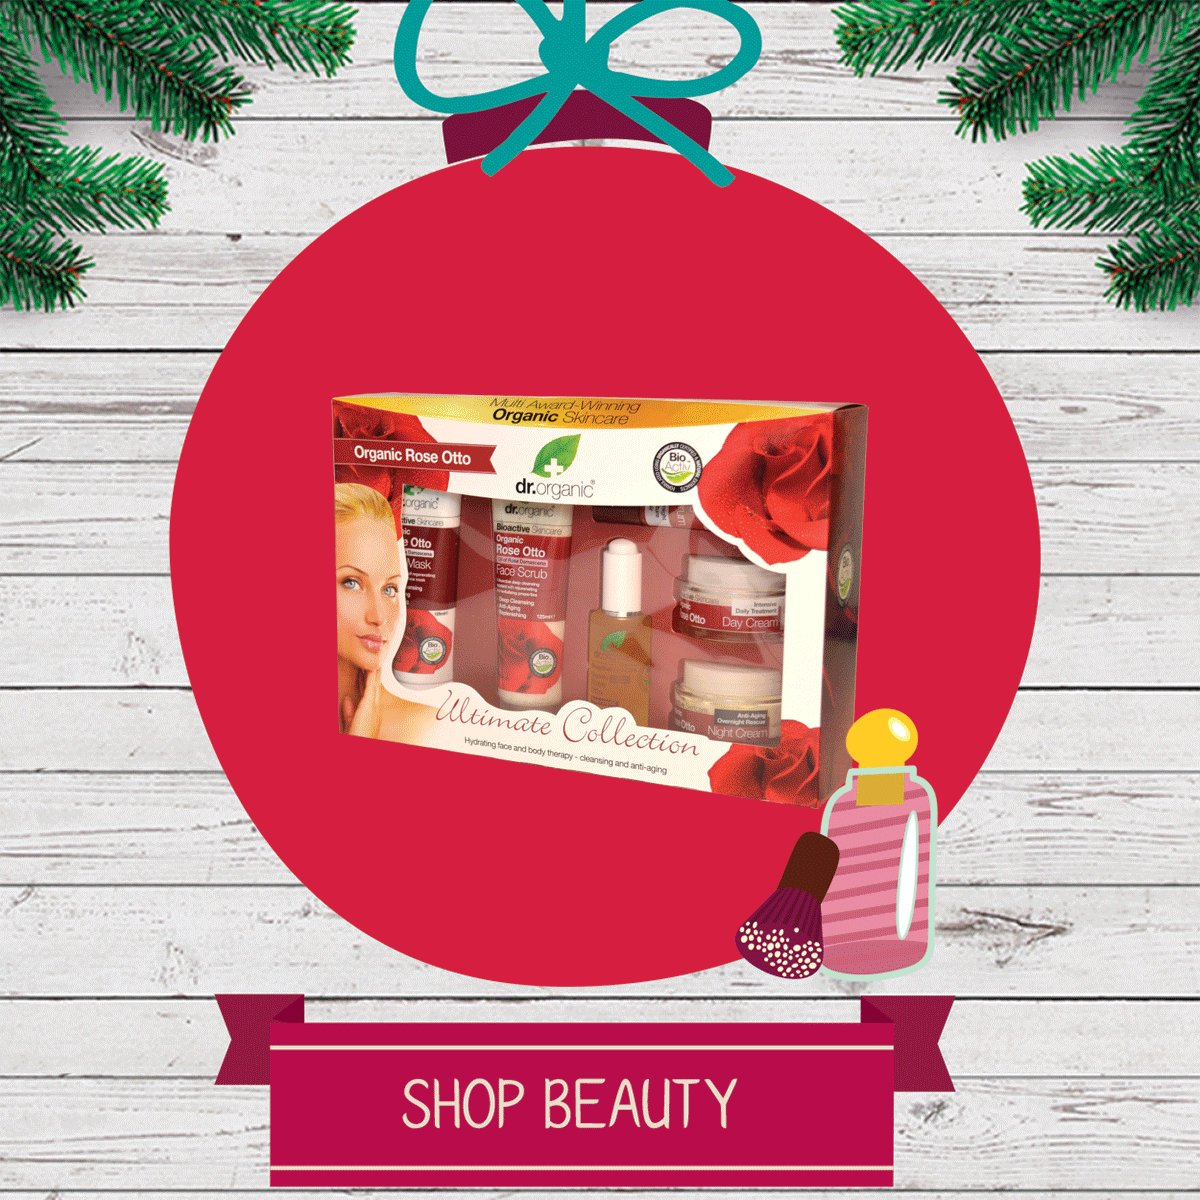 Ask Santa for one of these gorgeous gift packs from Dr Organic https://t.co/778zW56DLB https://t.co/DOpLPzleG7